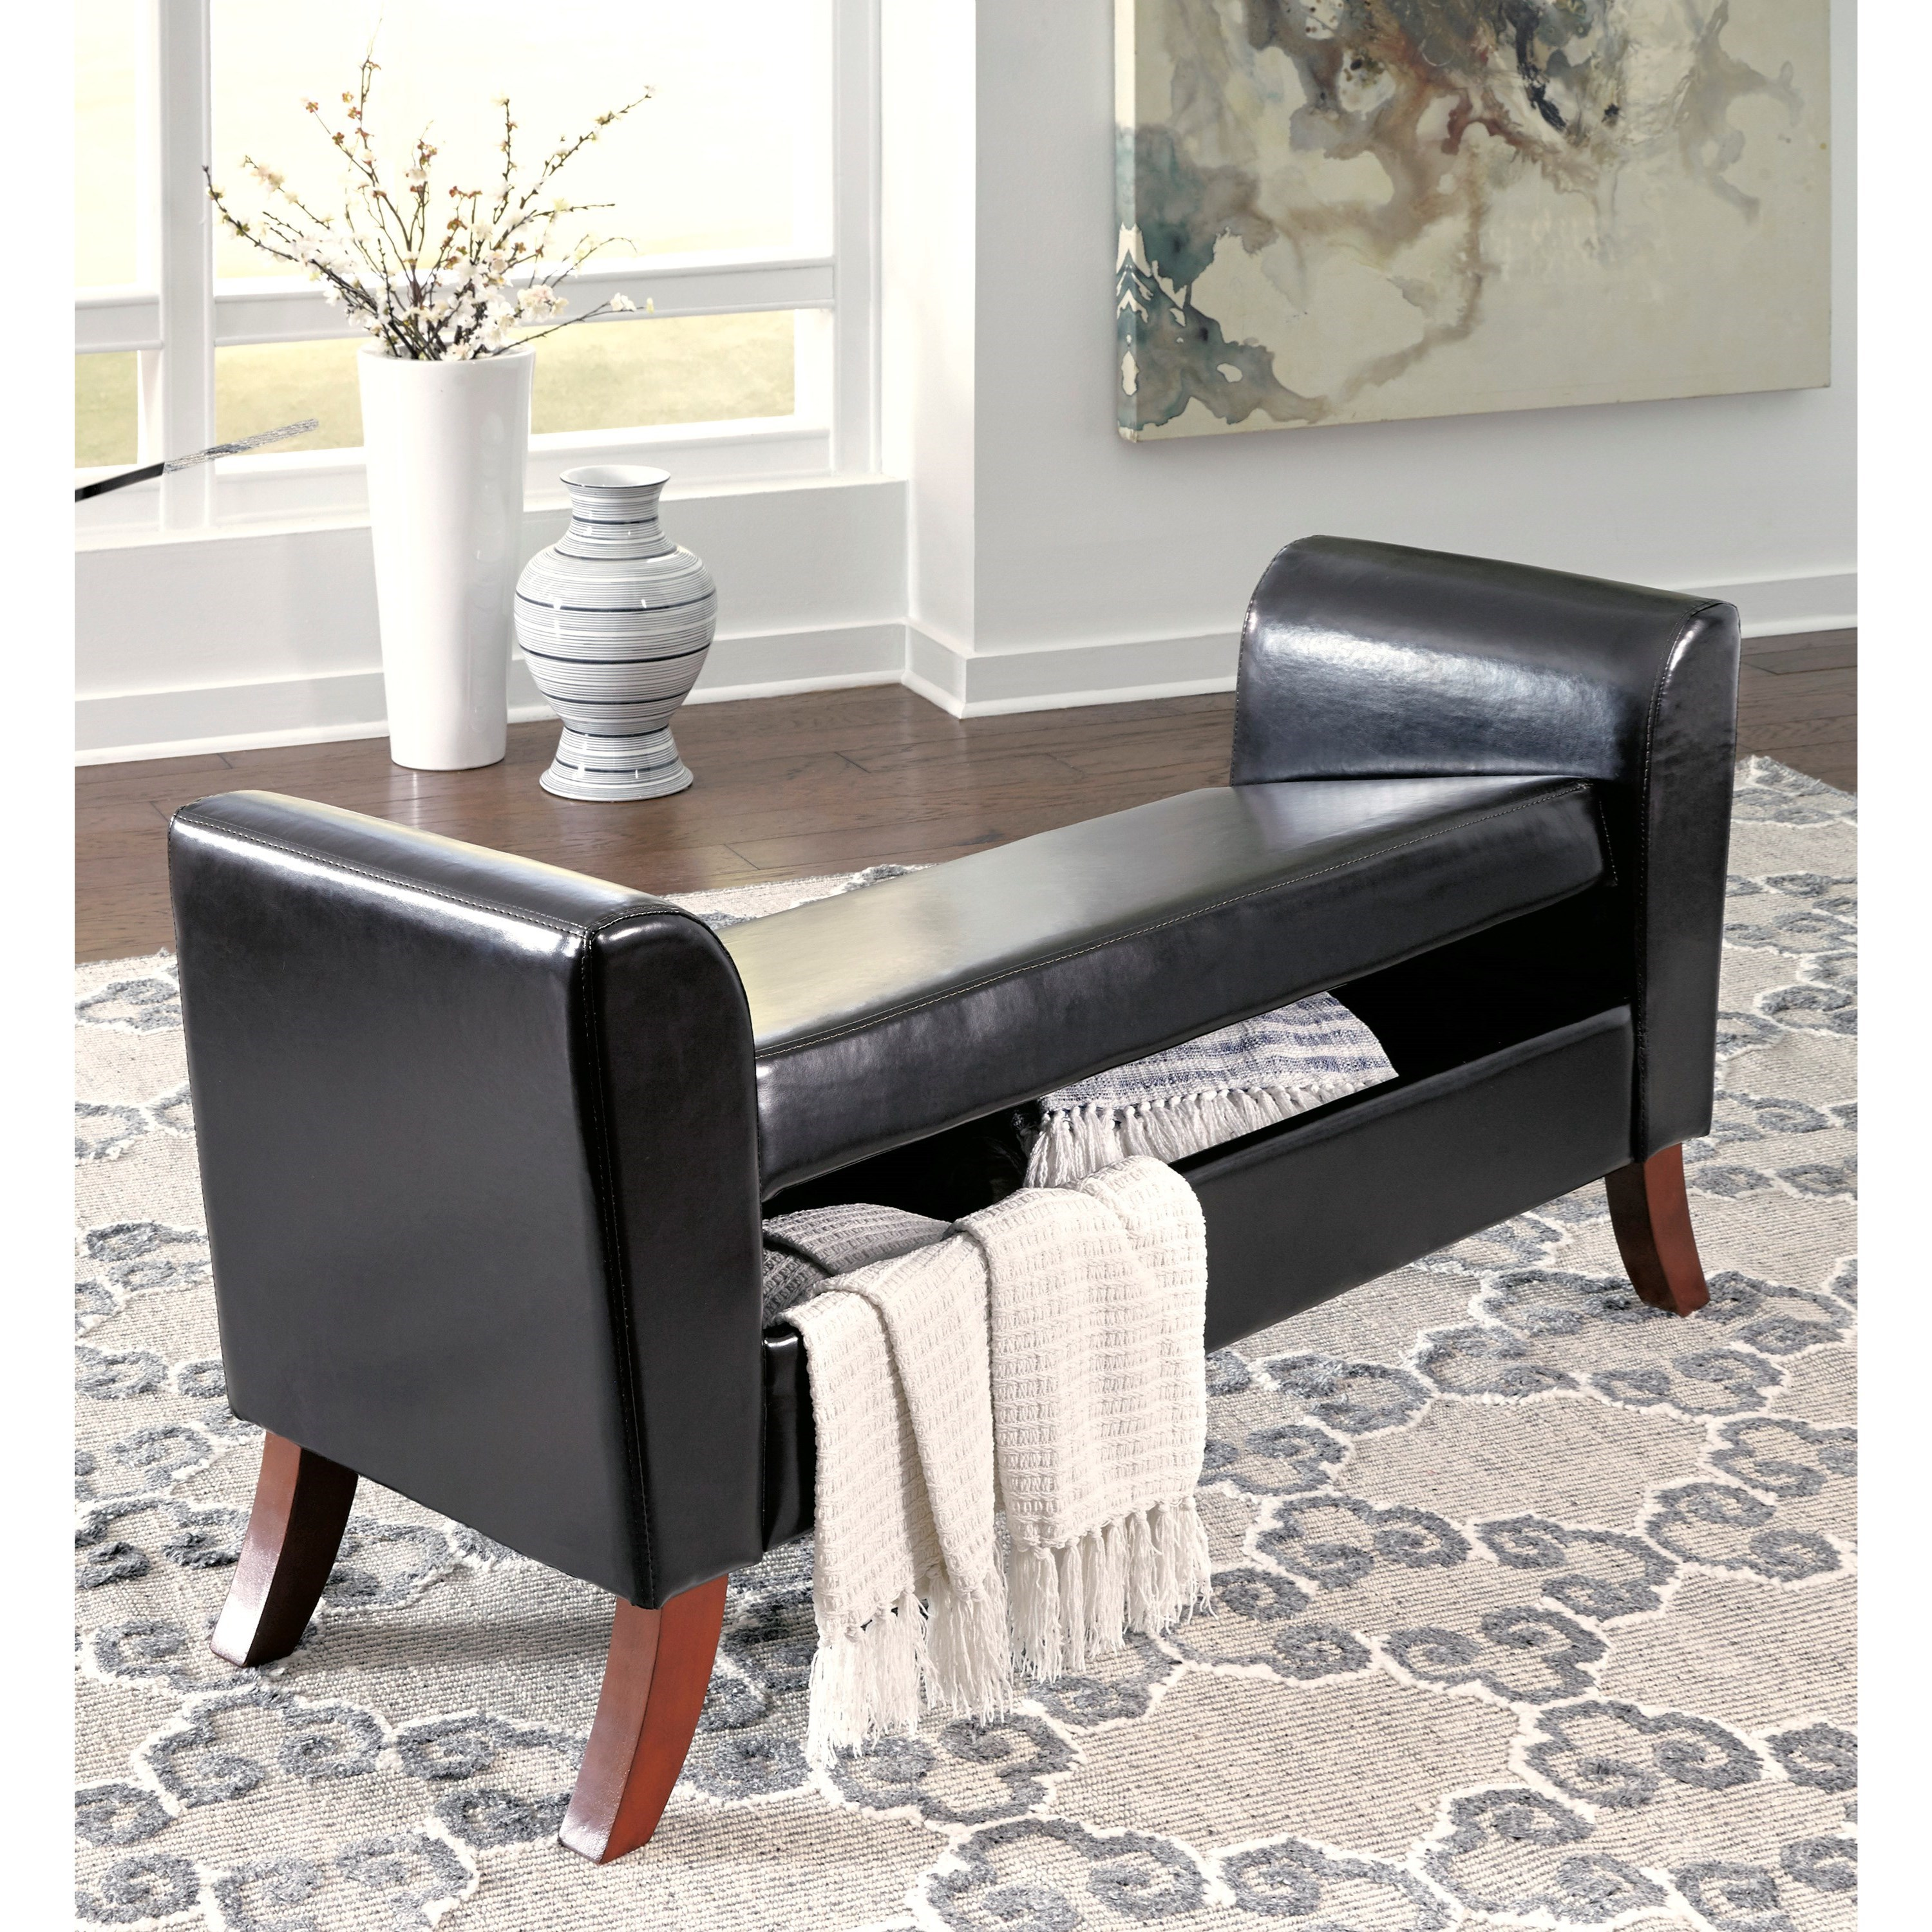 Signature Design By Ashley Benches B010-109 Upholstered